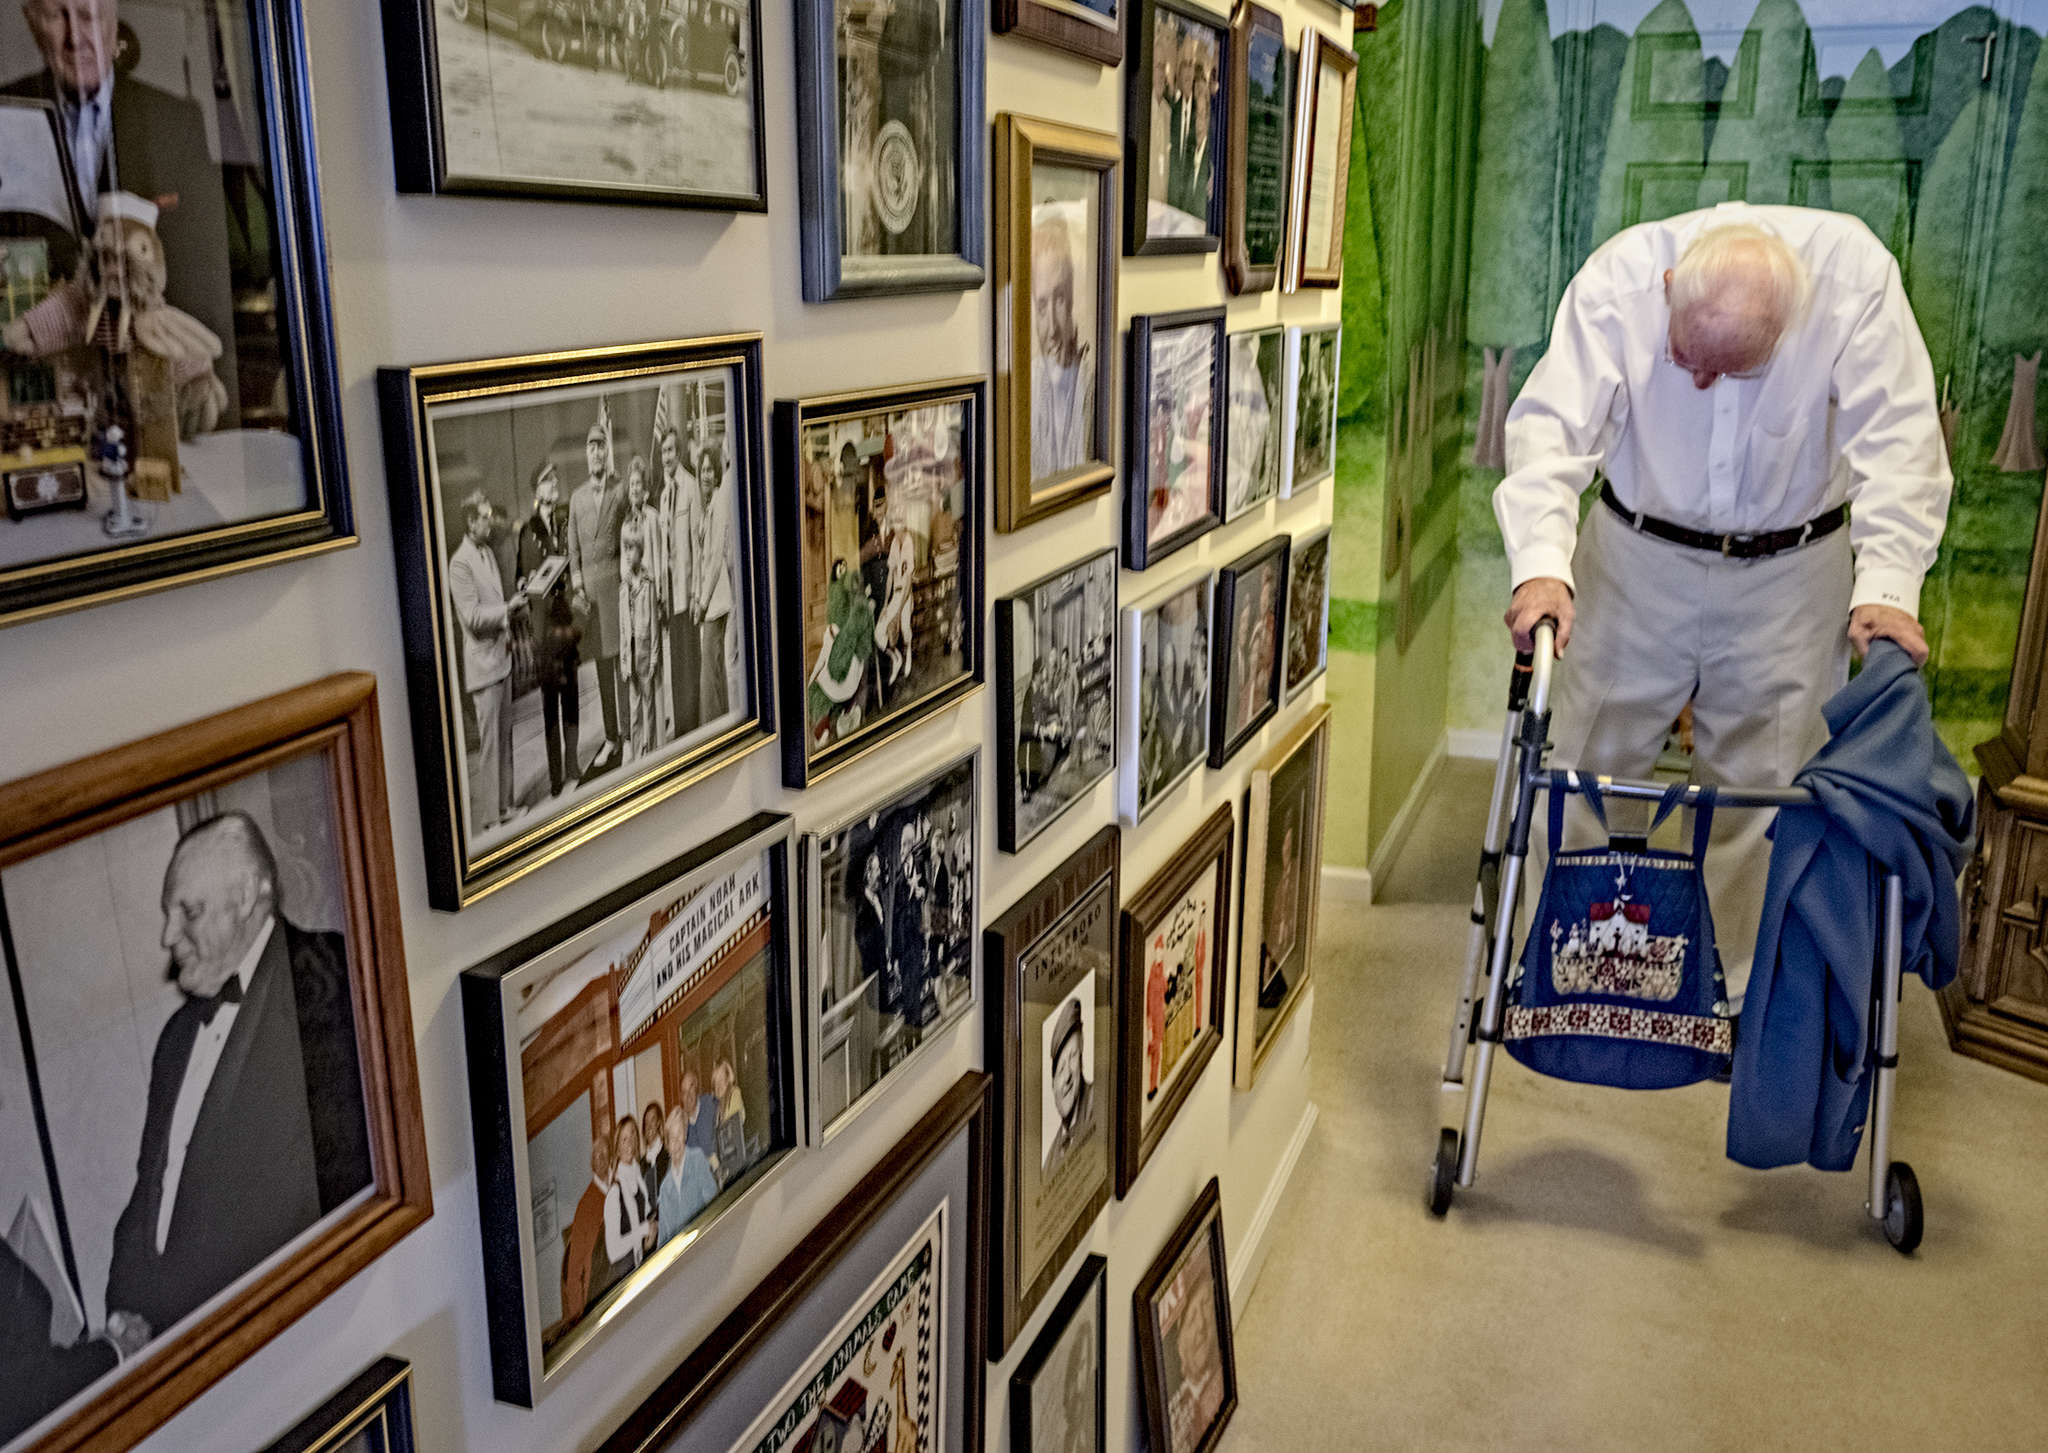 Carter Merbreier , better known to generations of morning TV viewers as Captain Noah, in his Audubon home surrounded by a lifetime of memories. ED HILLE / Staff Photographer